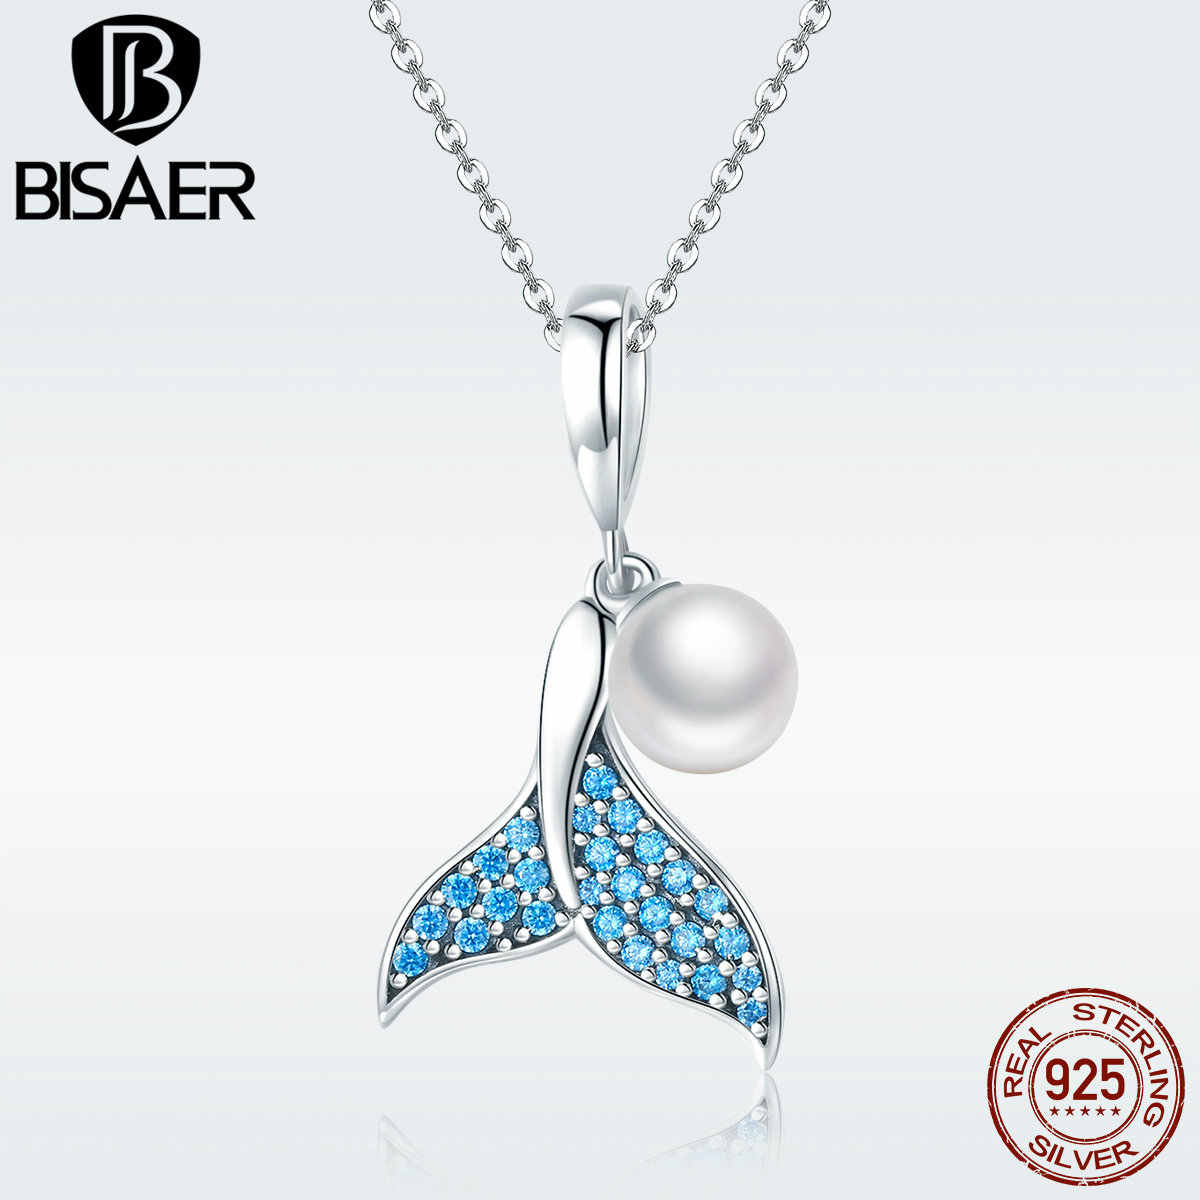 BISAER Pendant Charms 925 Sterling Silver Blue Fish Tail Pearl Mermaid Beads for s925diy Charm Bracelet or Necklace GXC877